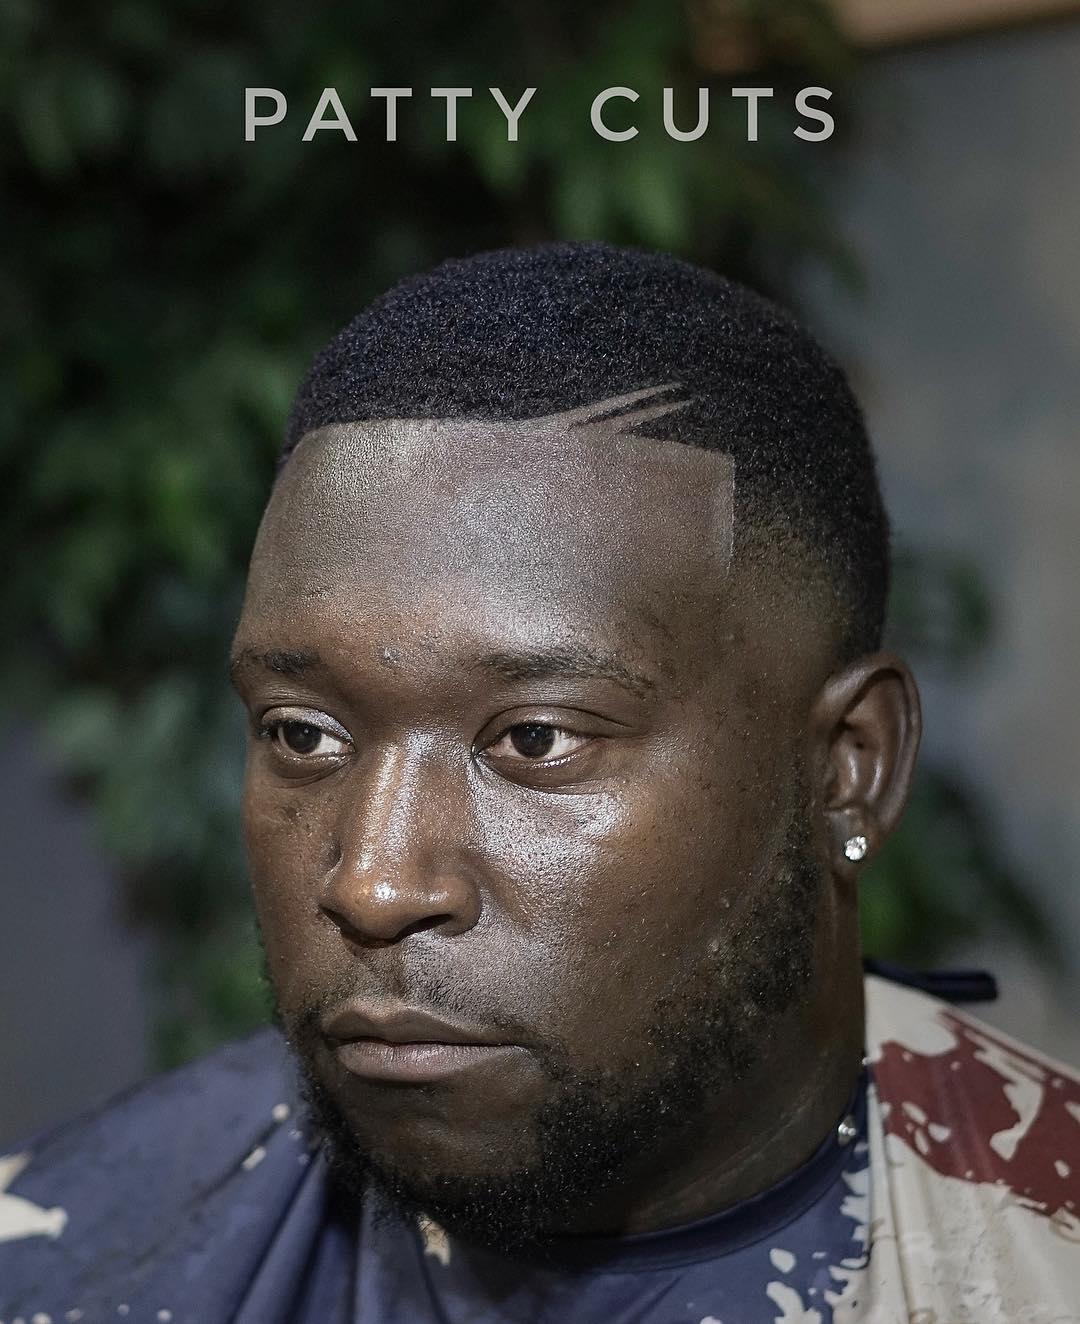 patty_cuts fade haircut black with cool buzz cut hairstyle